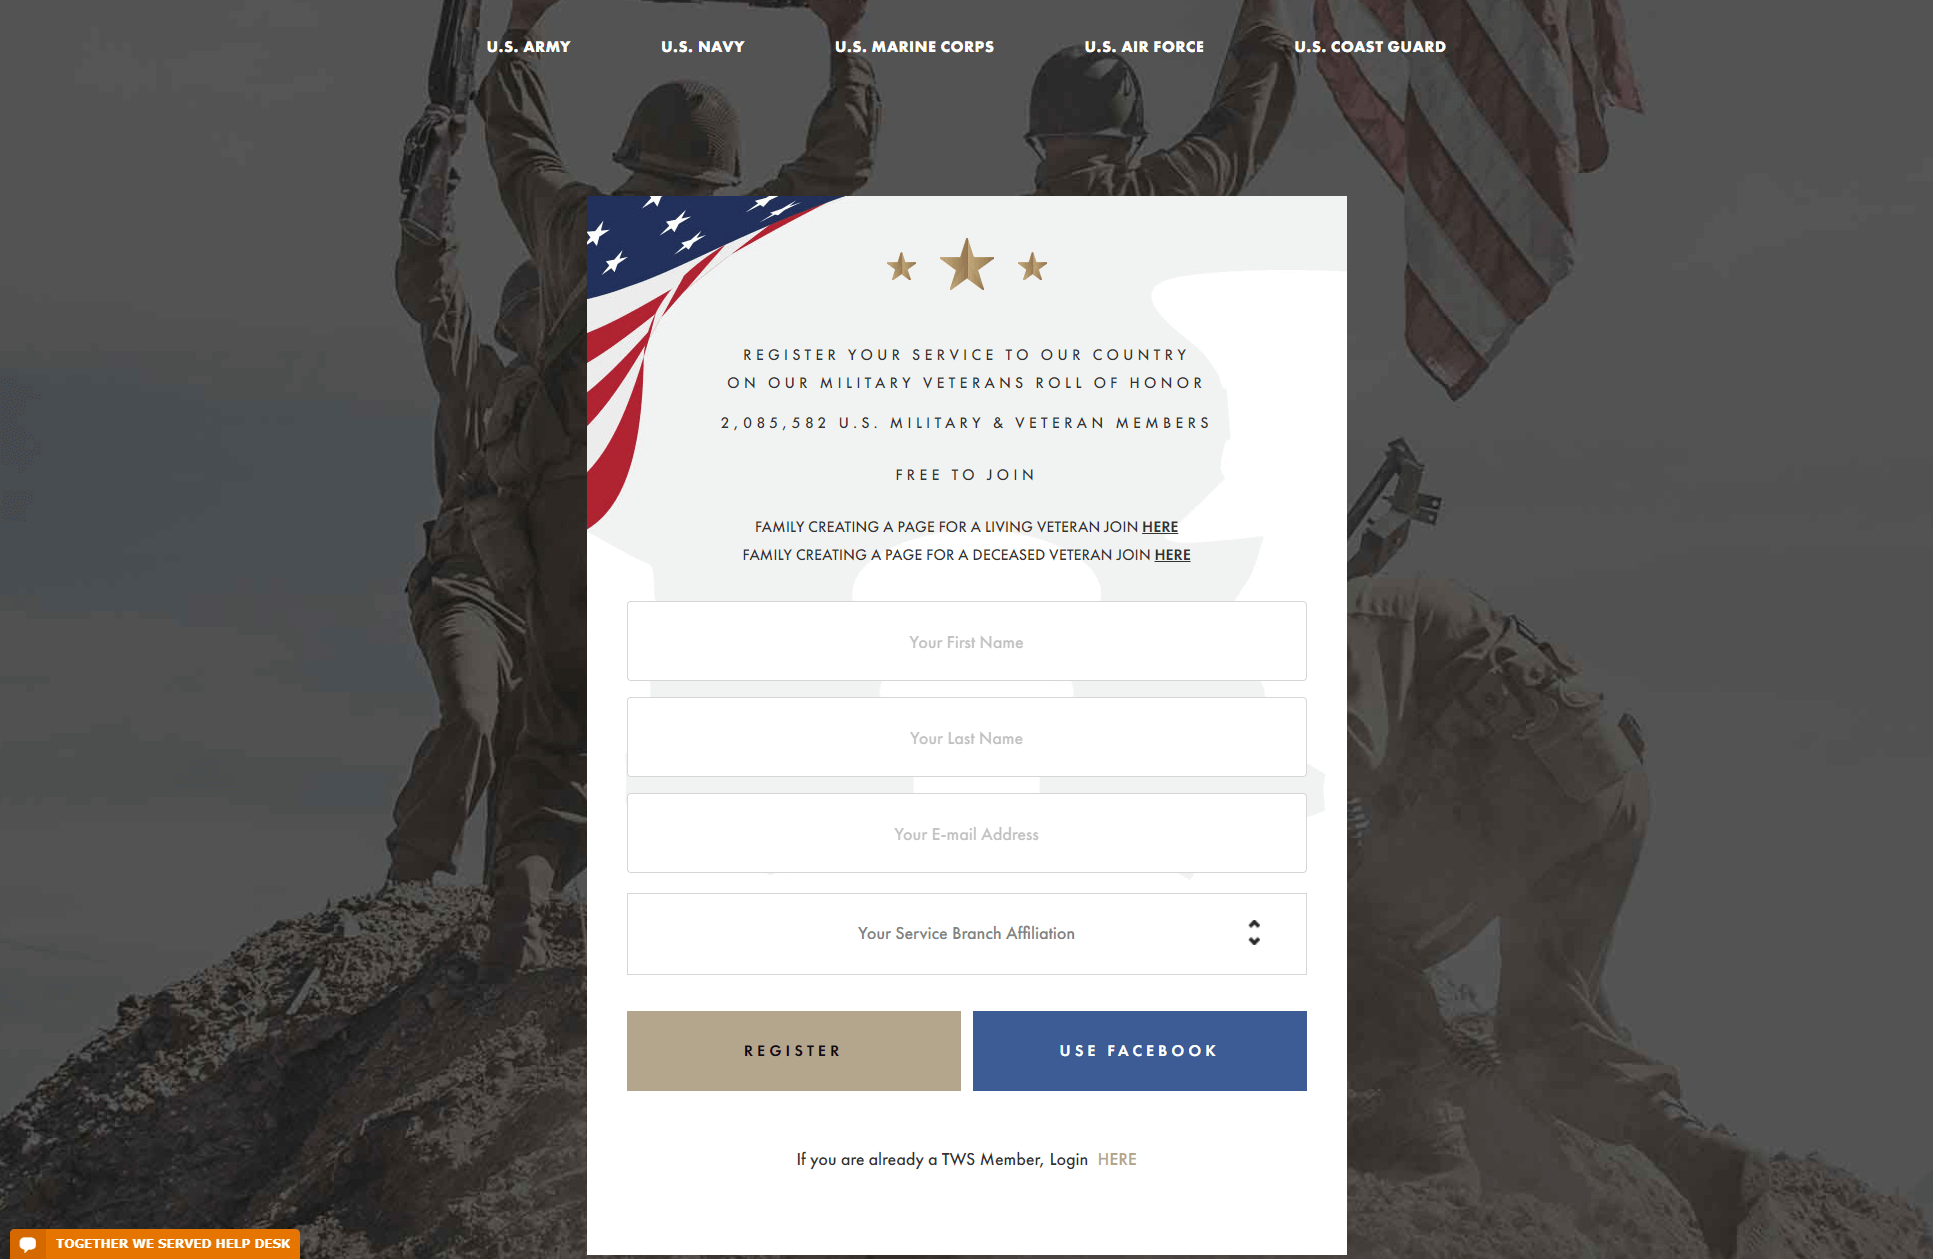 rollofhonor.togetherweserved.com-2